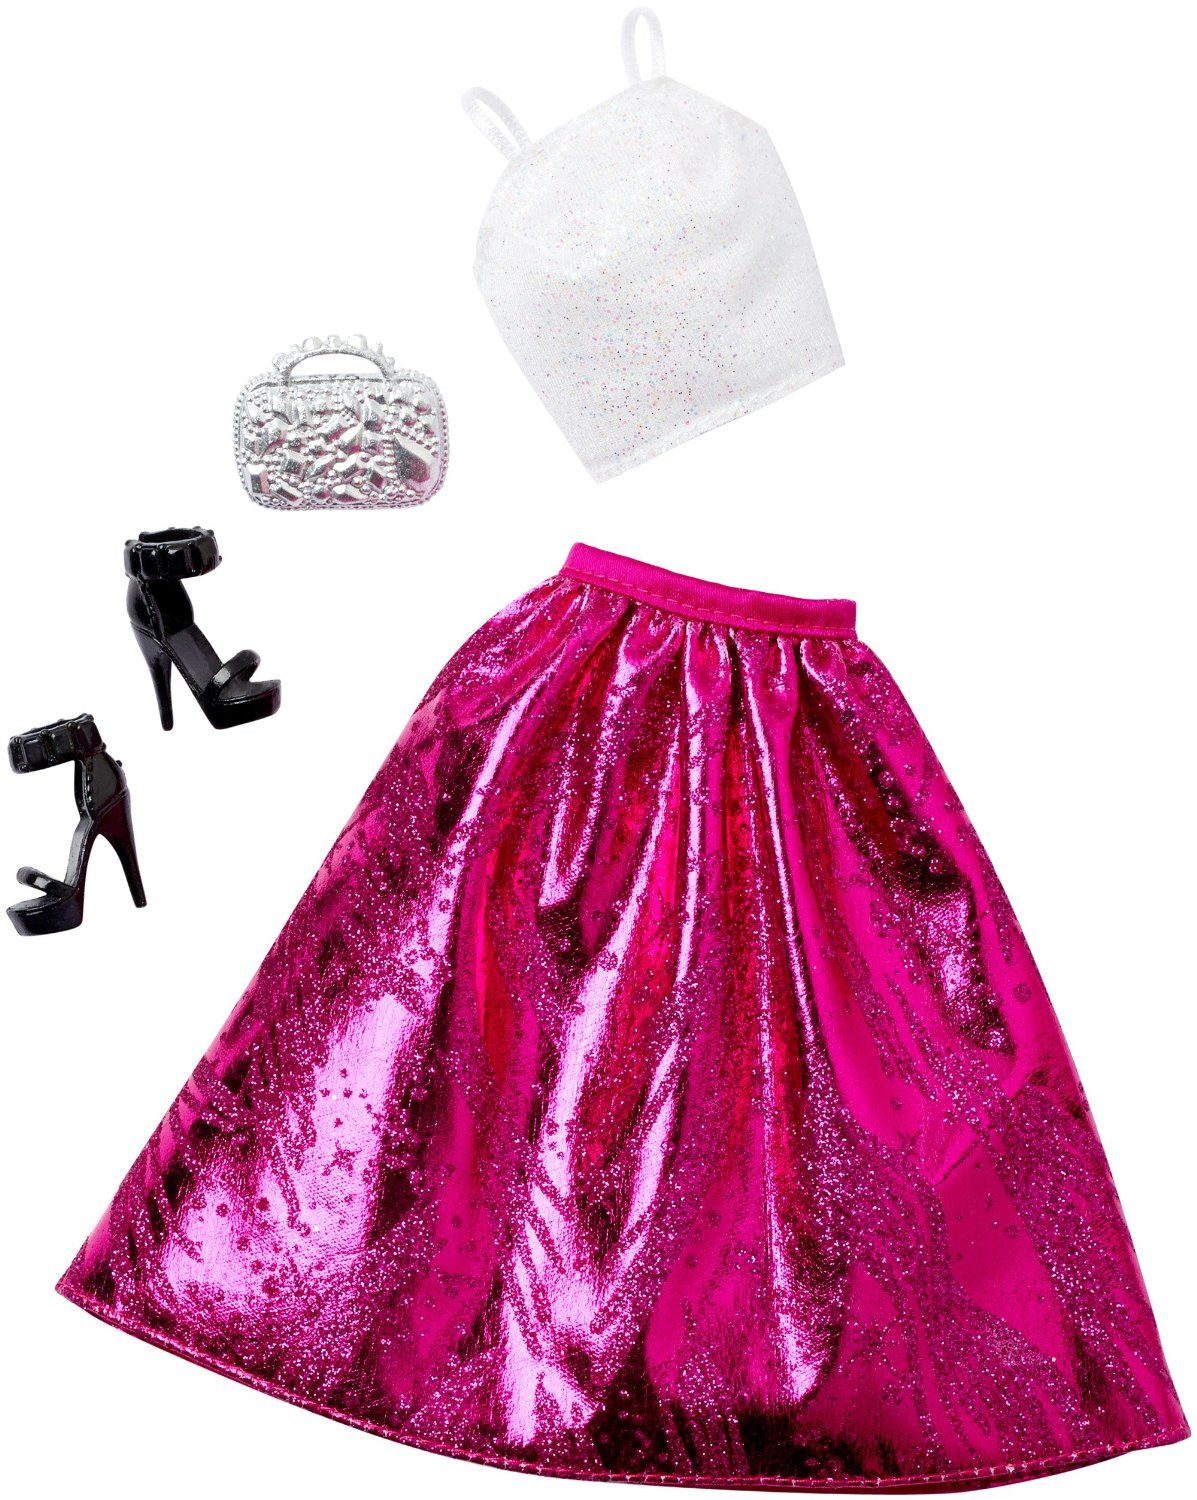 NEW  2019 BARBIE COMPLETE LOOK FASHION PACK OUTFIT LA Top /& PINK Skirt